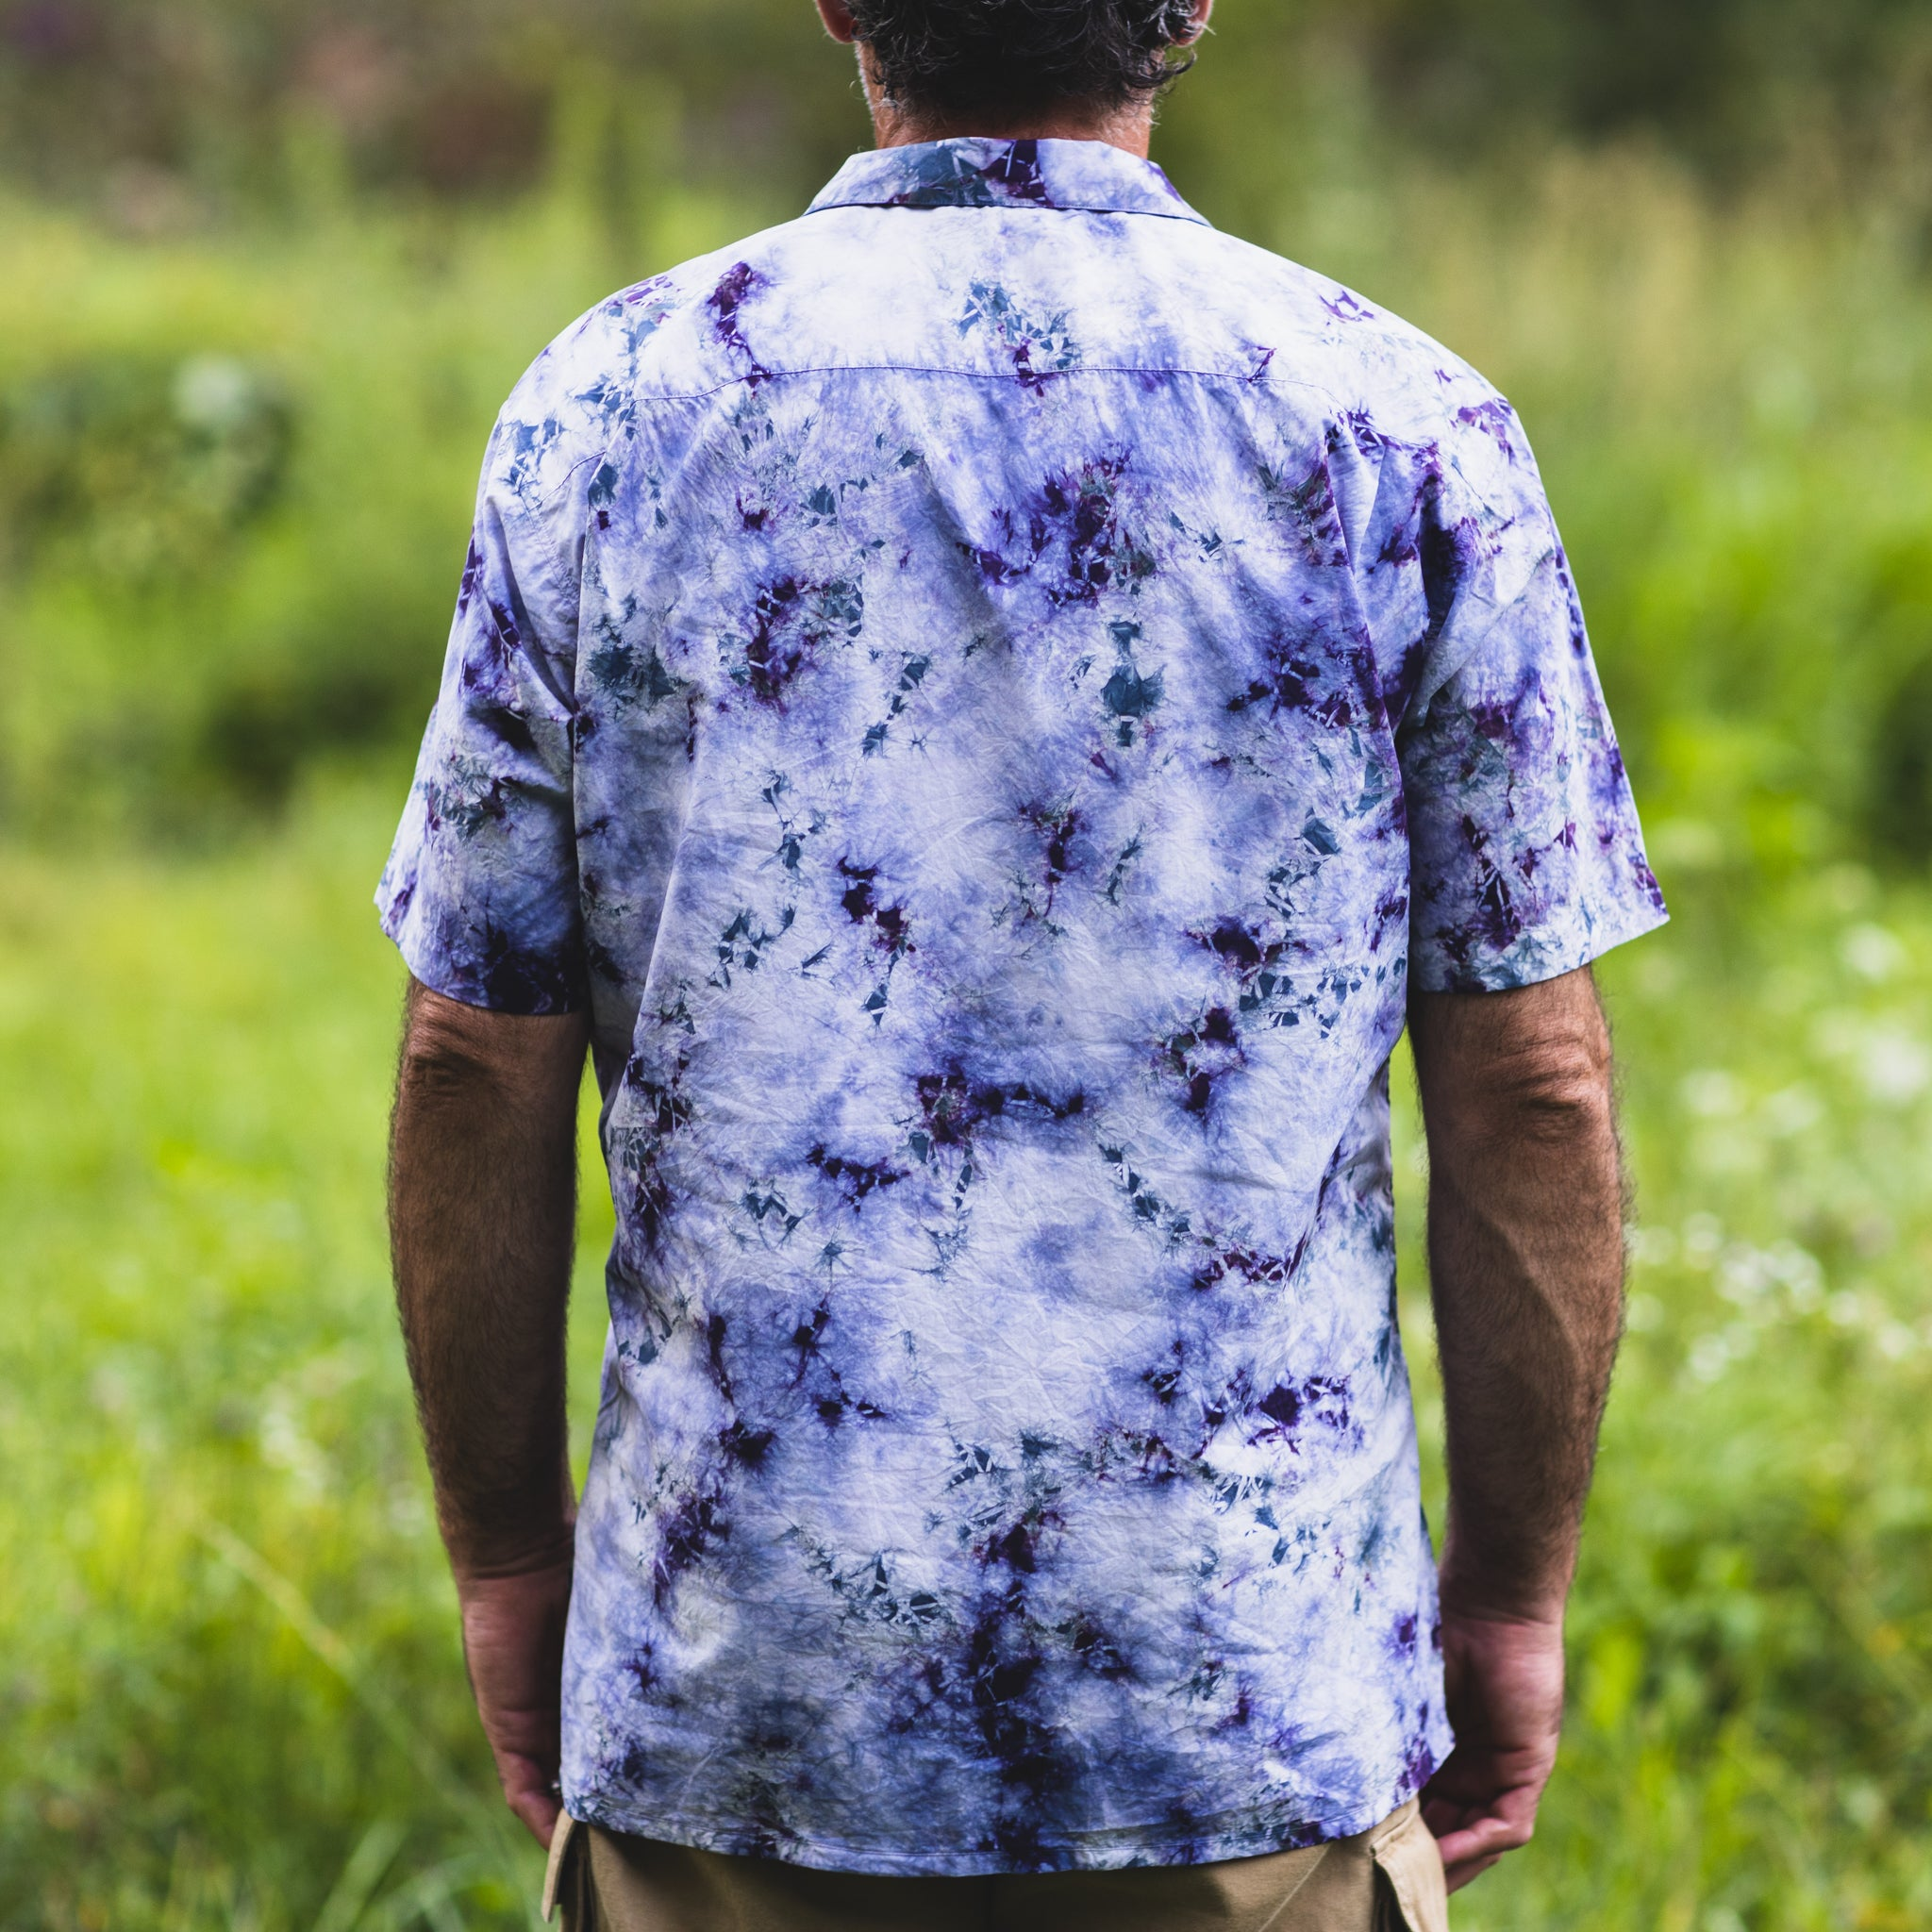 Back view of Original button down cotton camp shirt by mythosmade in purple gray white hand tie shibori dye art